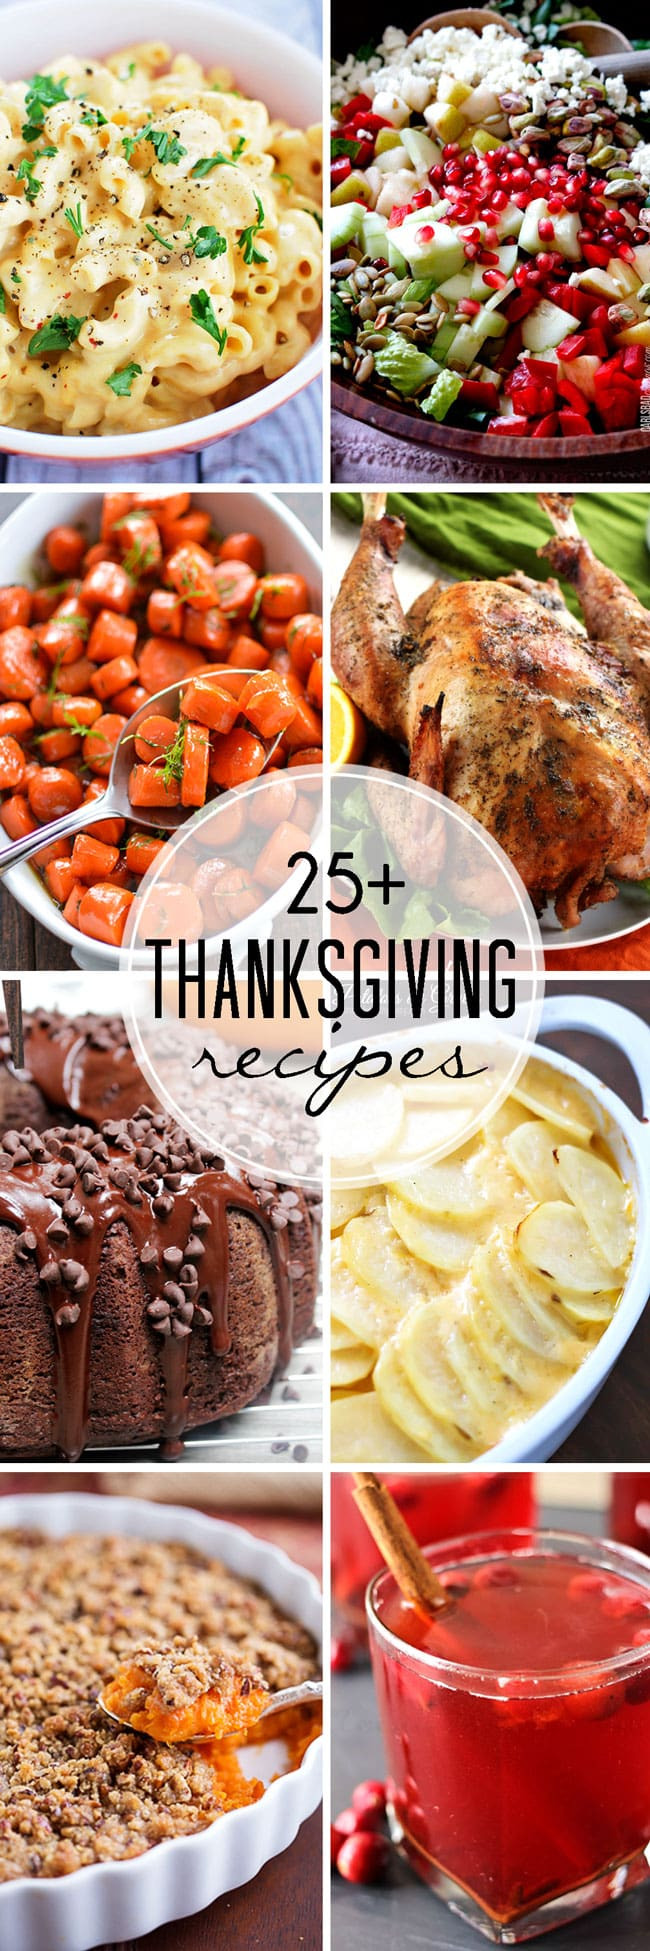 Thanksgiving Dinner Recipes  25 Thanksgiving Recipes That Skinny Chick Can Bake